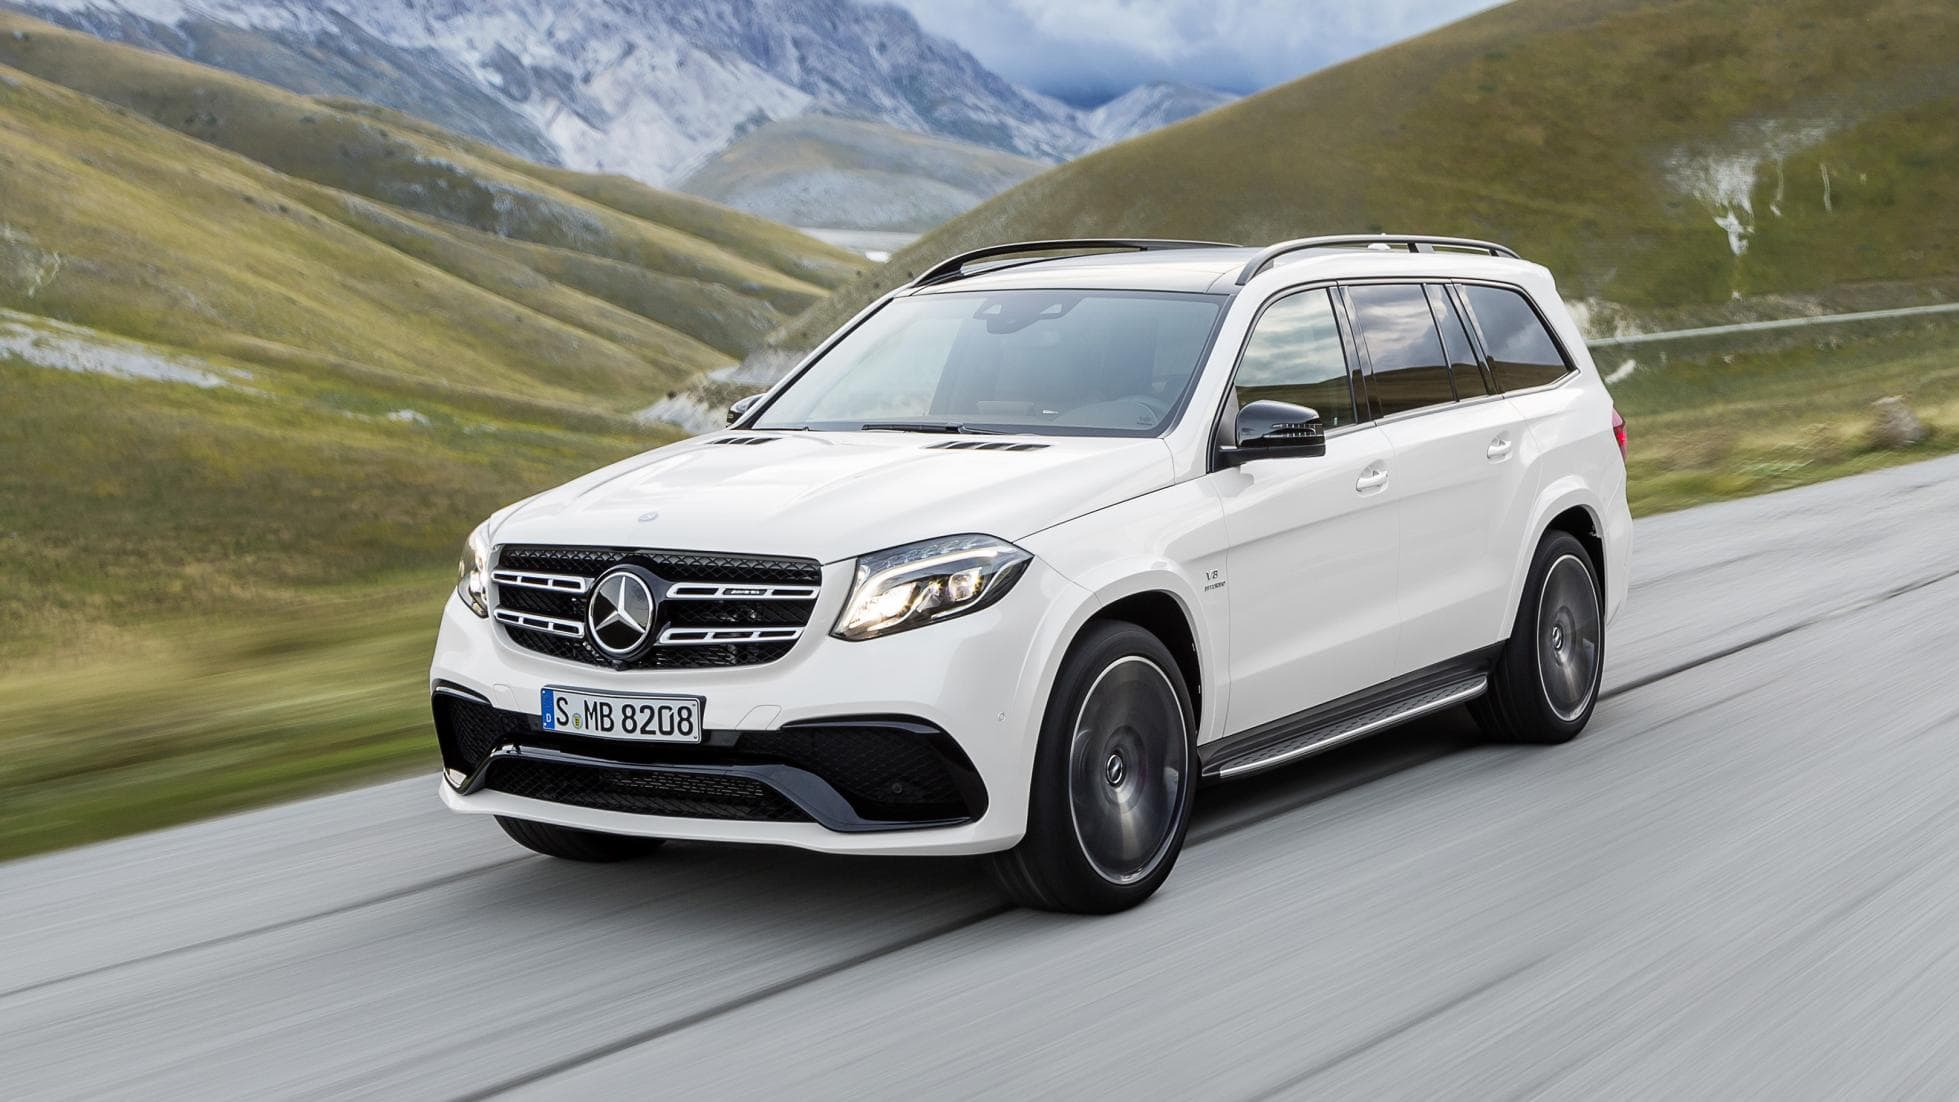 Mercedes GLS Widescreen